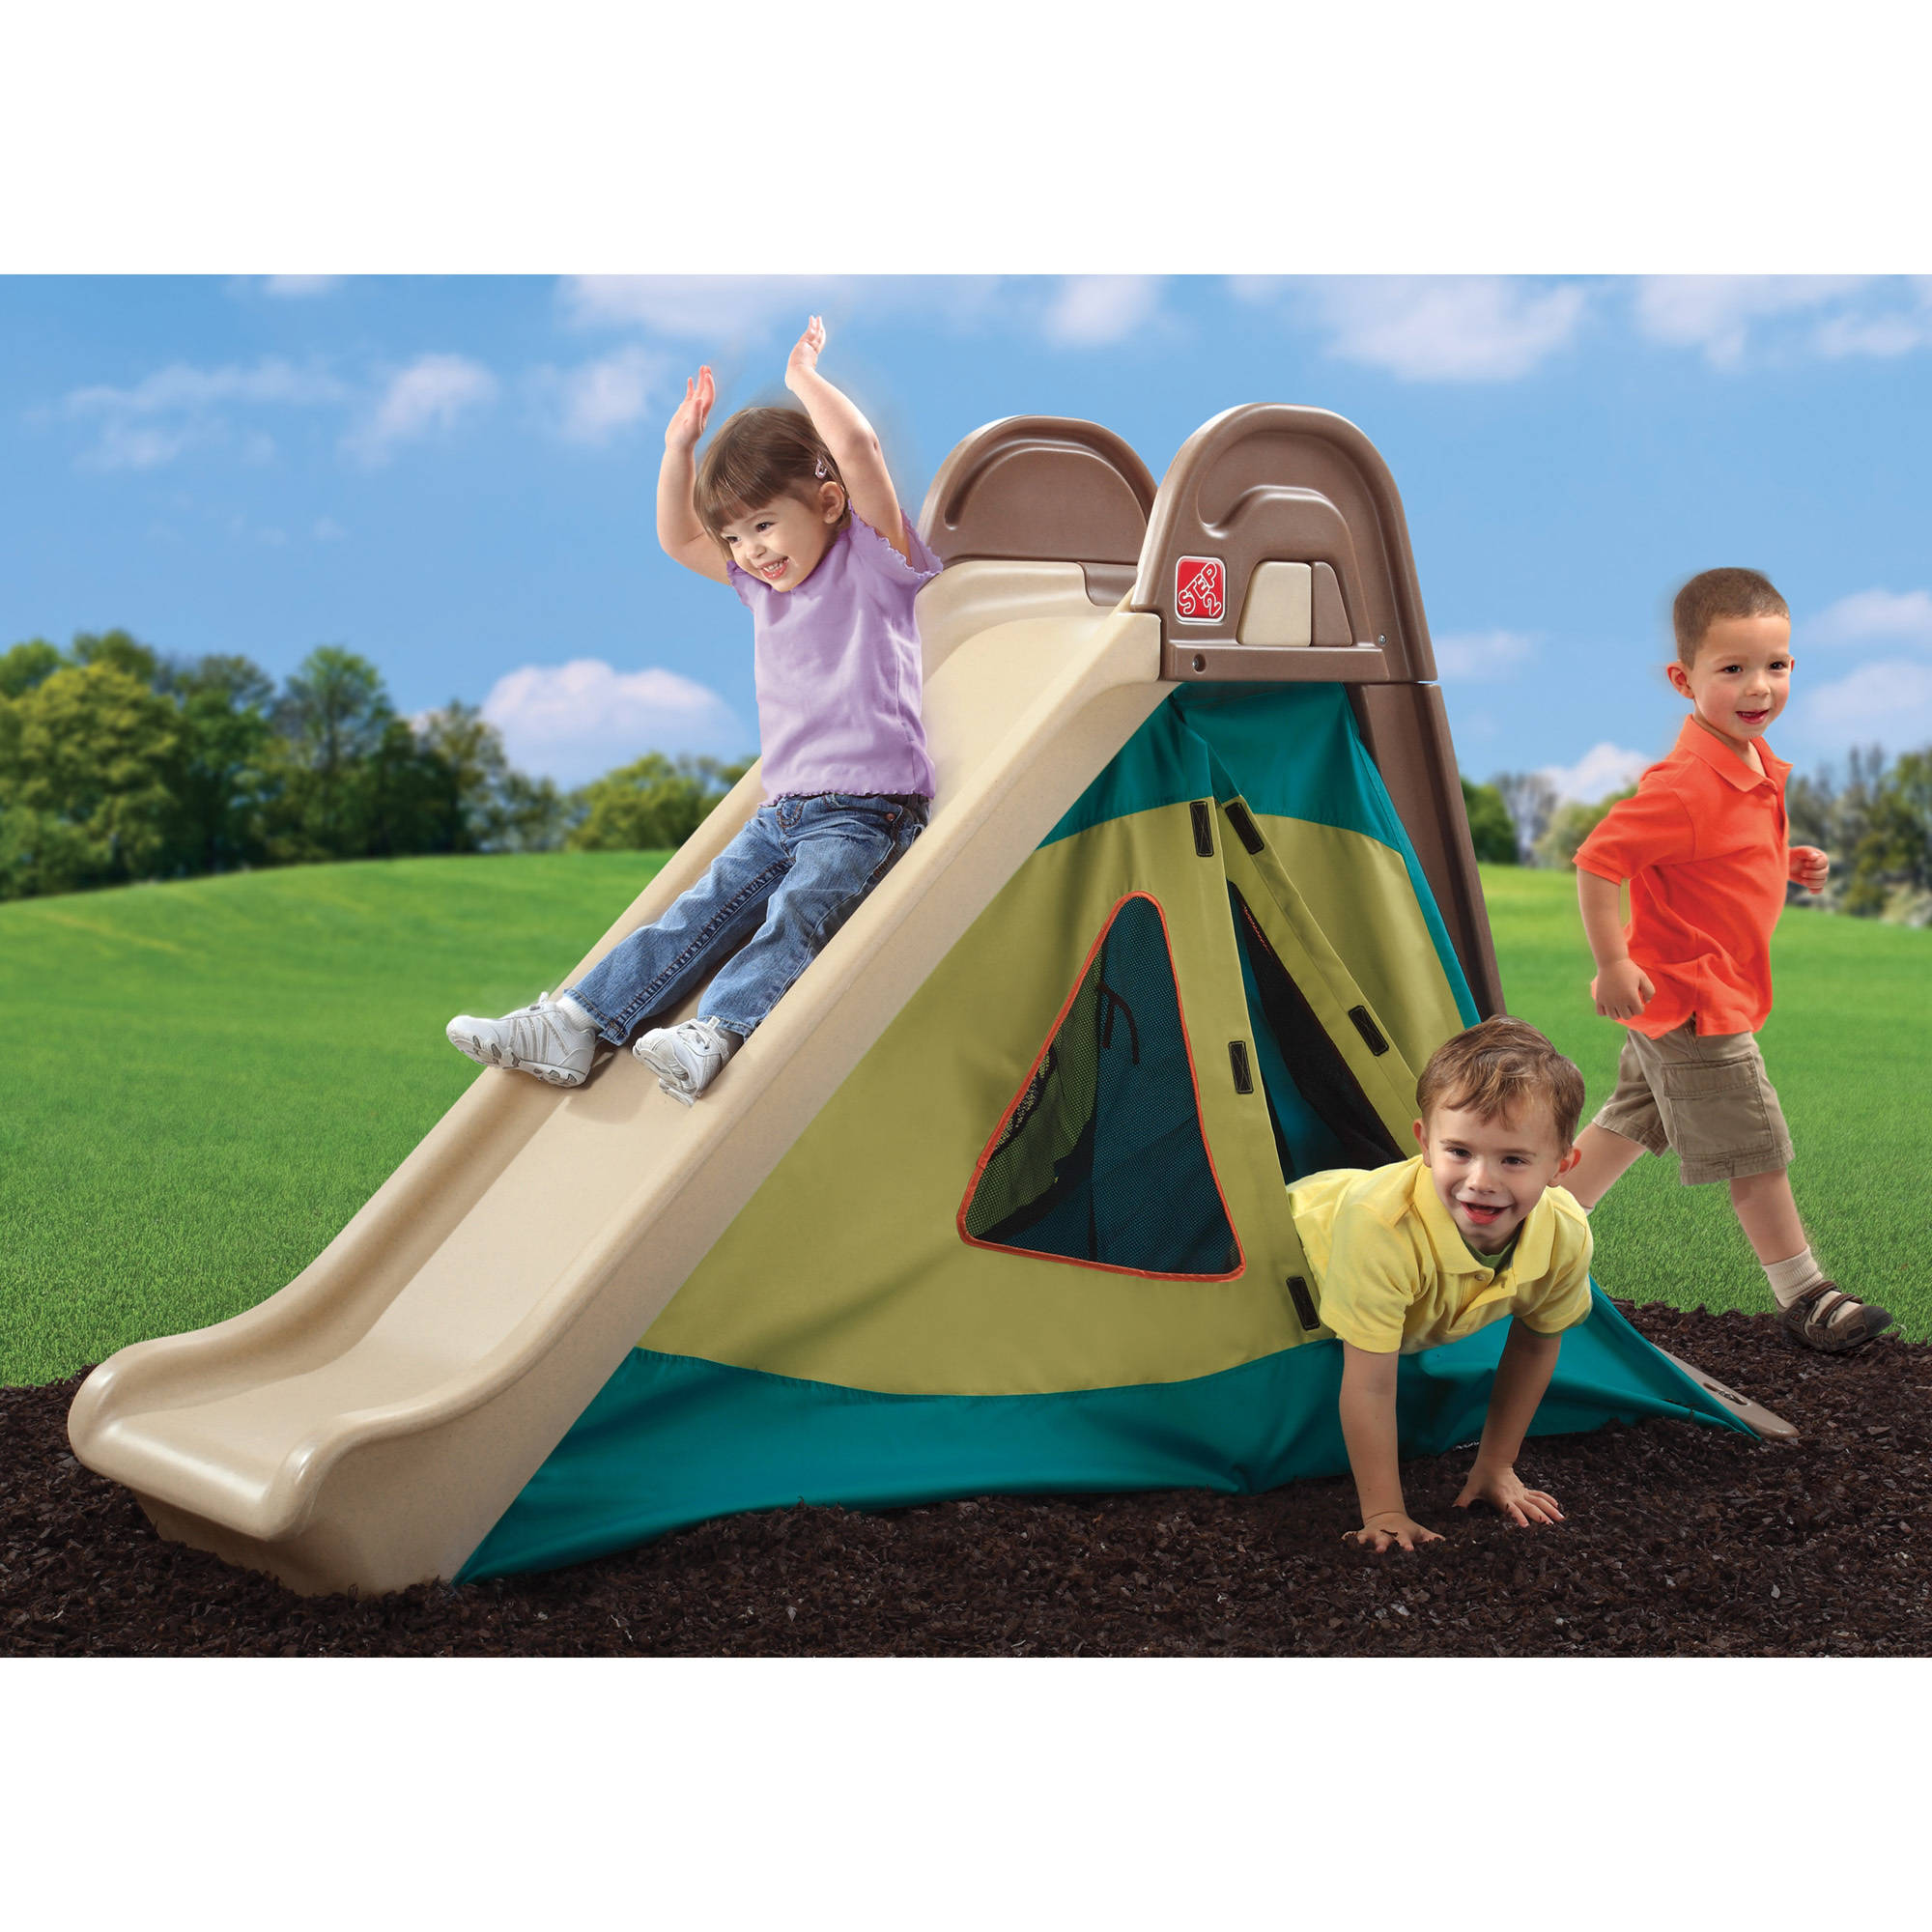 Step2 Fort Slide away Walmart